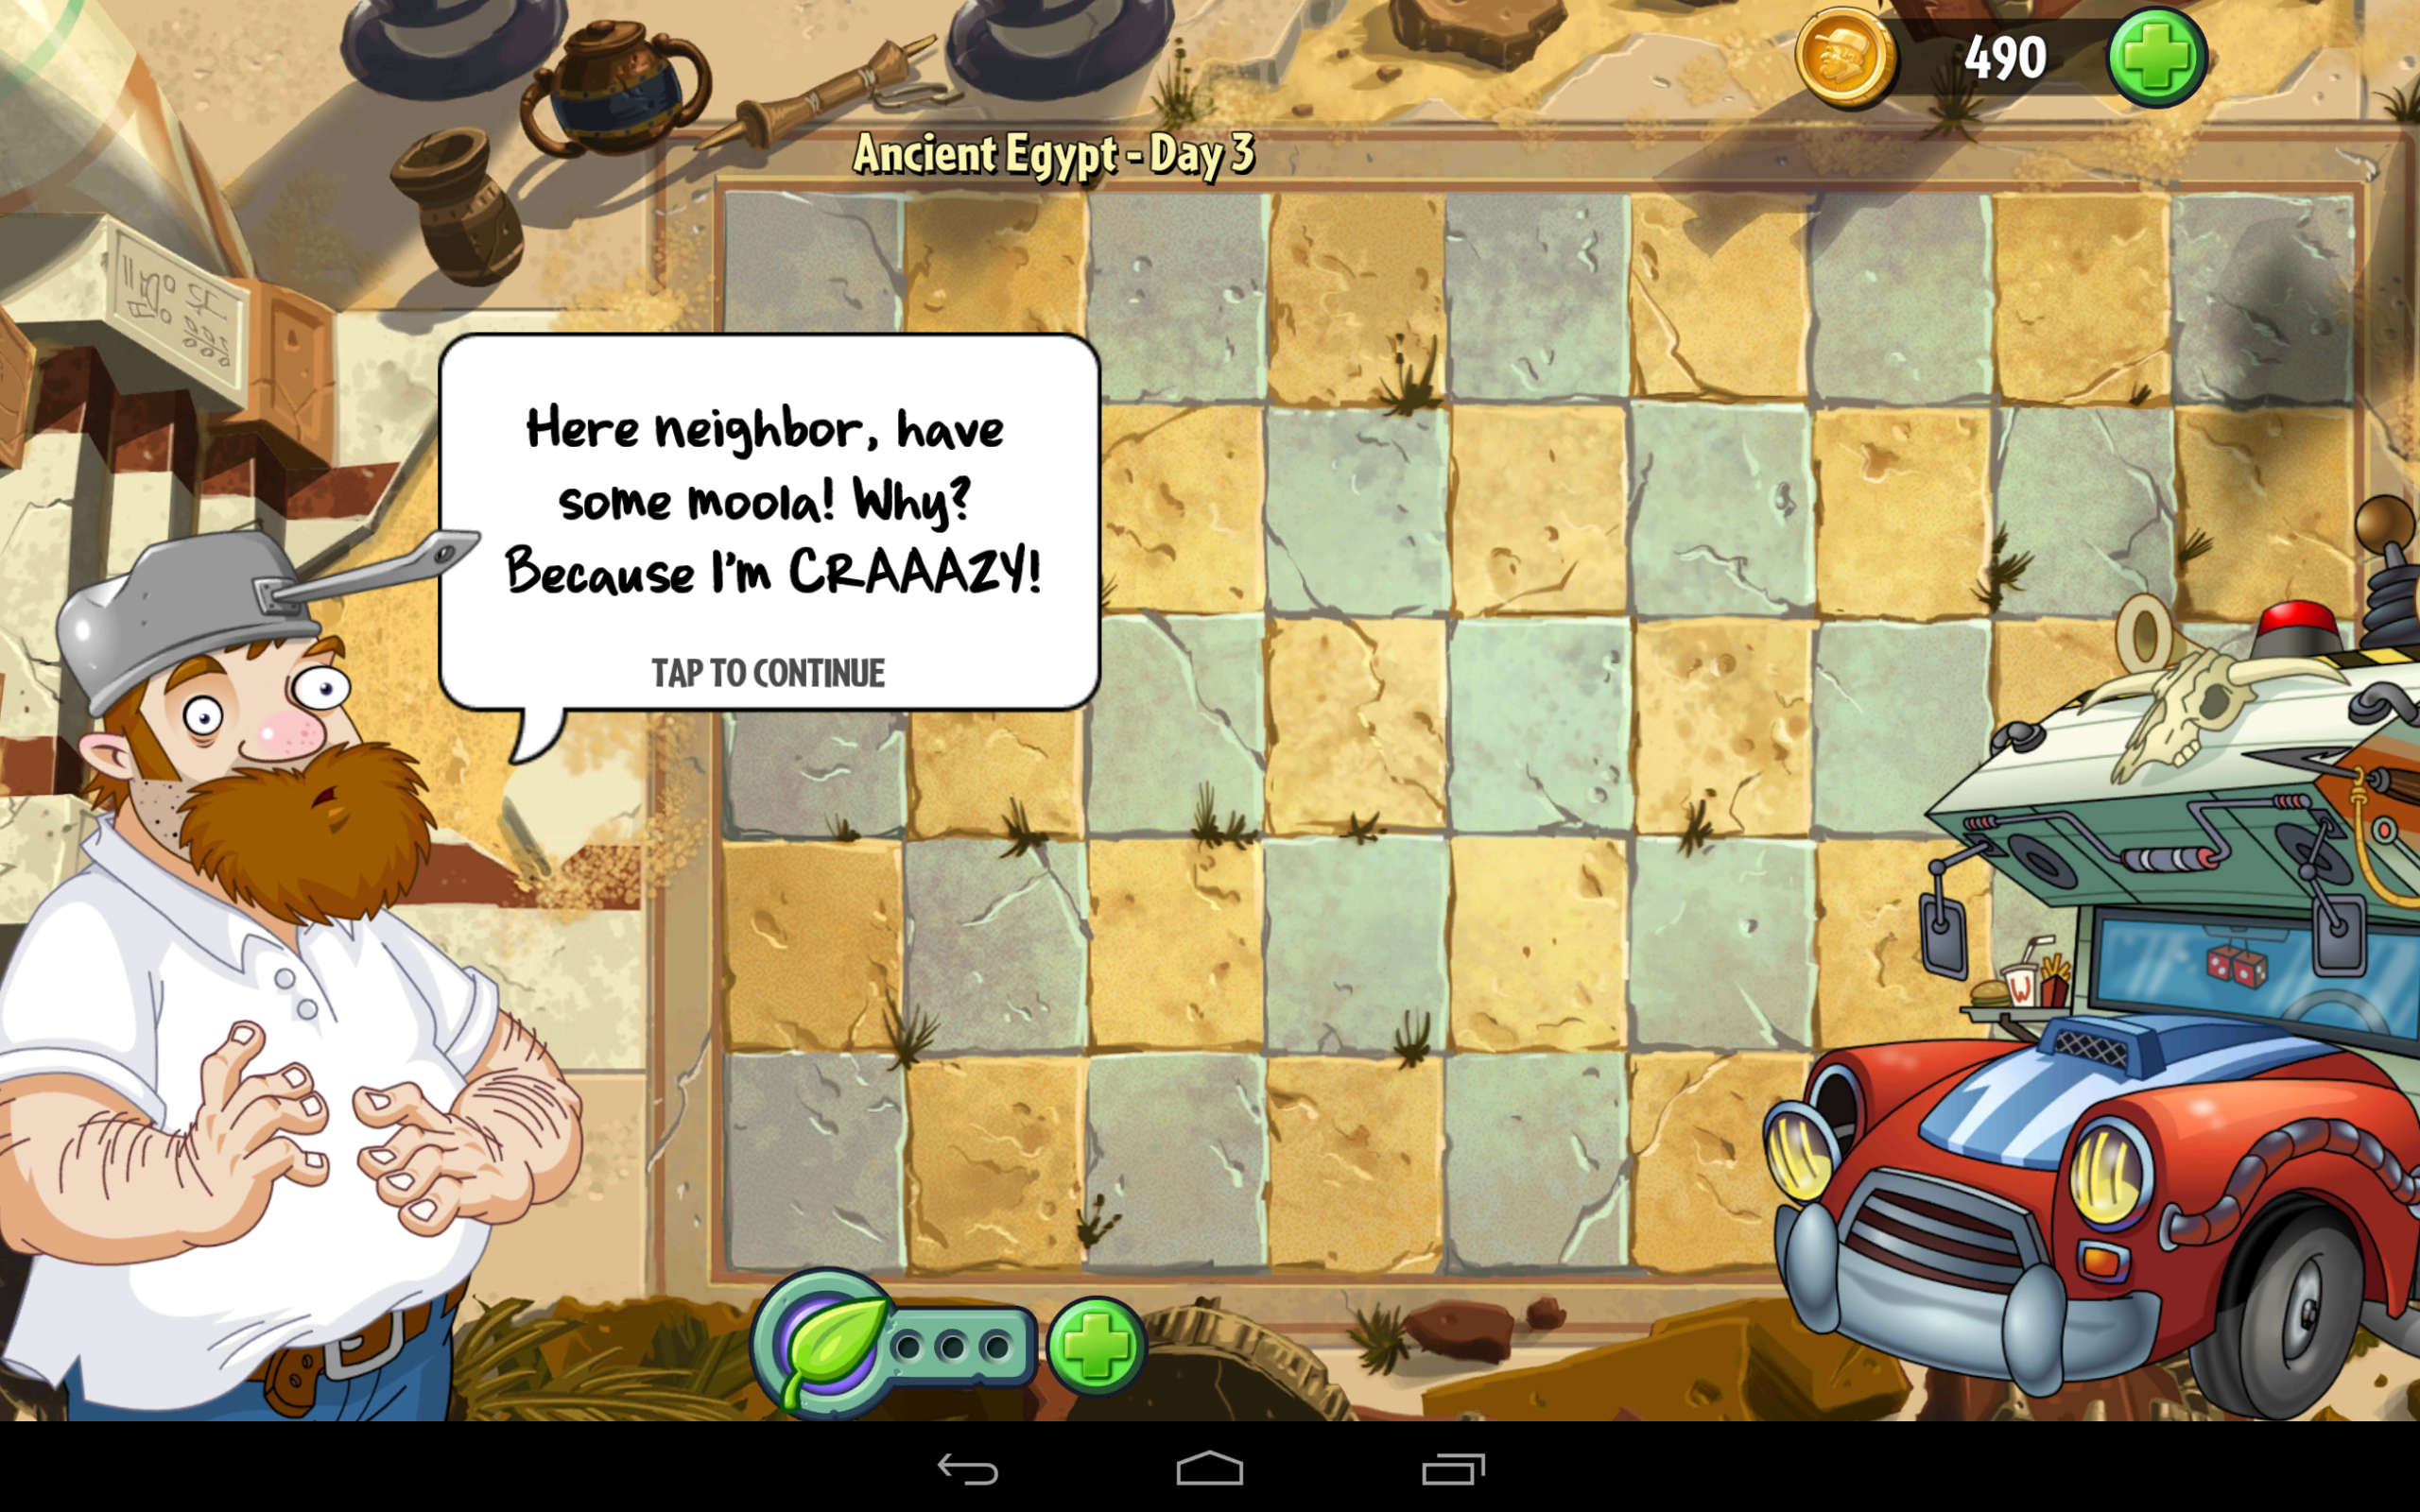 Plants Vs  Zombies 2 Review: This Time The Zombies Want Your Brains